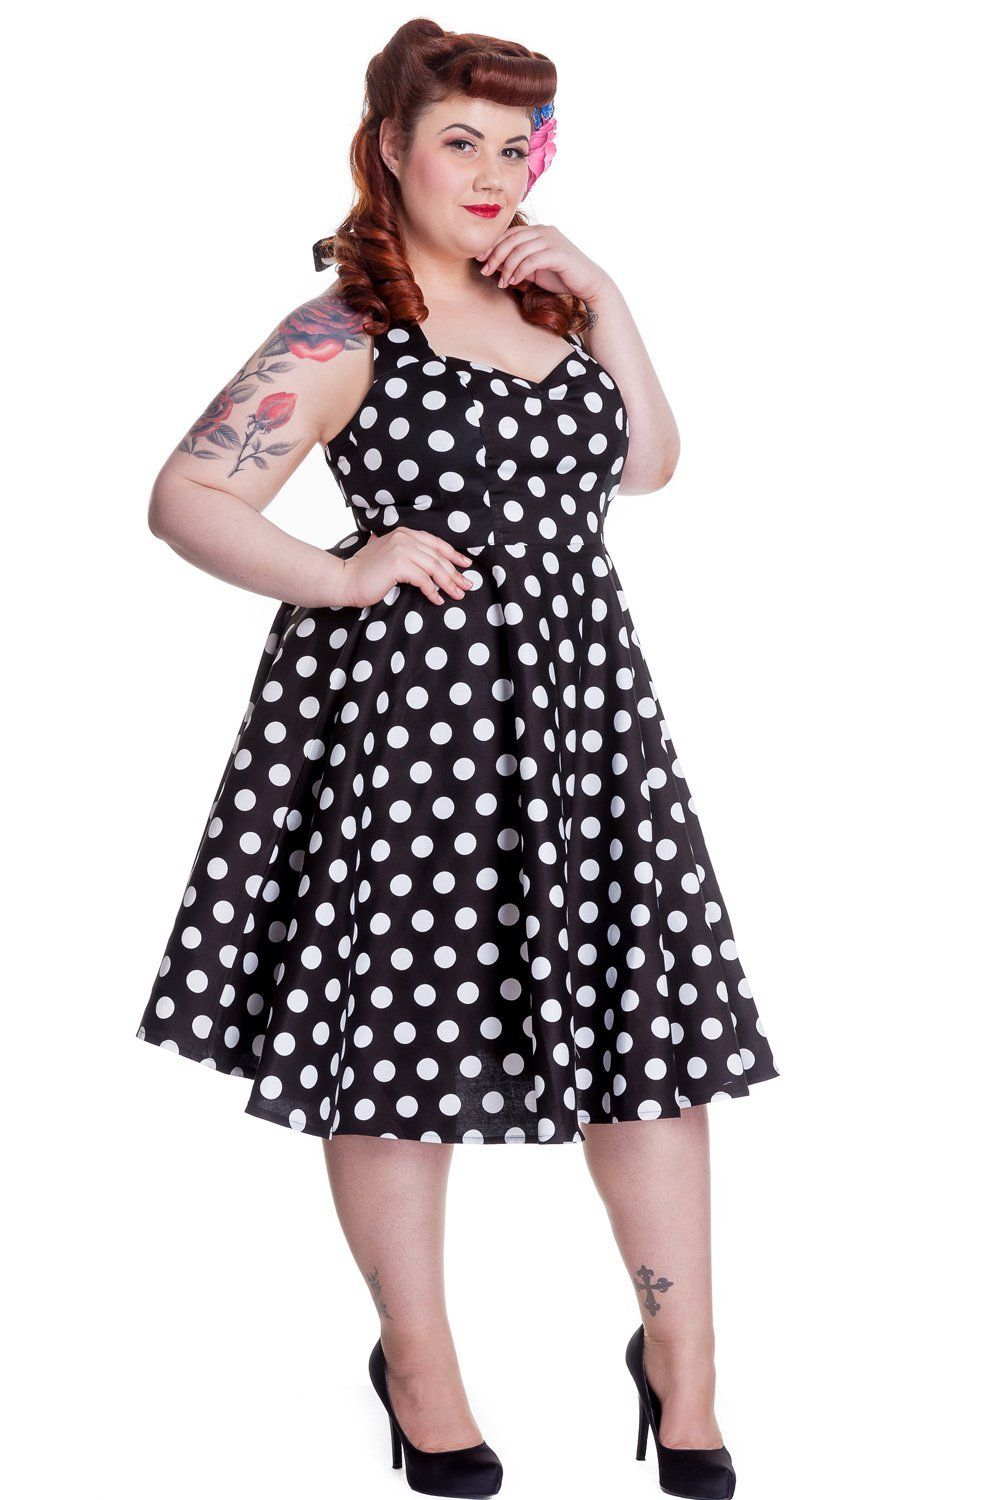 93ec26d2a6c9e Hell Bunny Plus Size 60 s Black and White Polka Dot Halter Party Dress with  A-line Flare Skirt. V-neck and halter styles create a lengthened effect and  ...